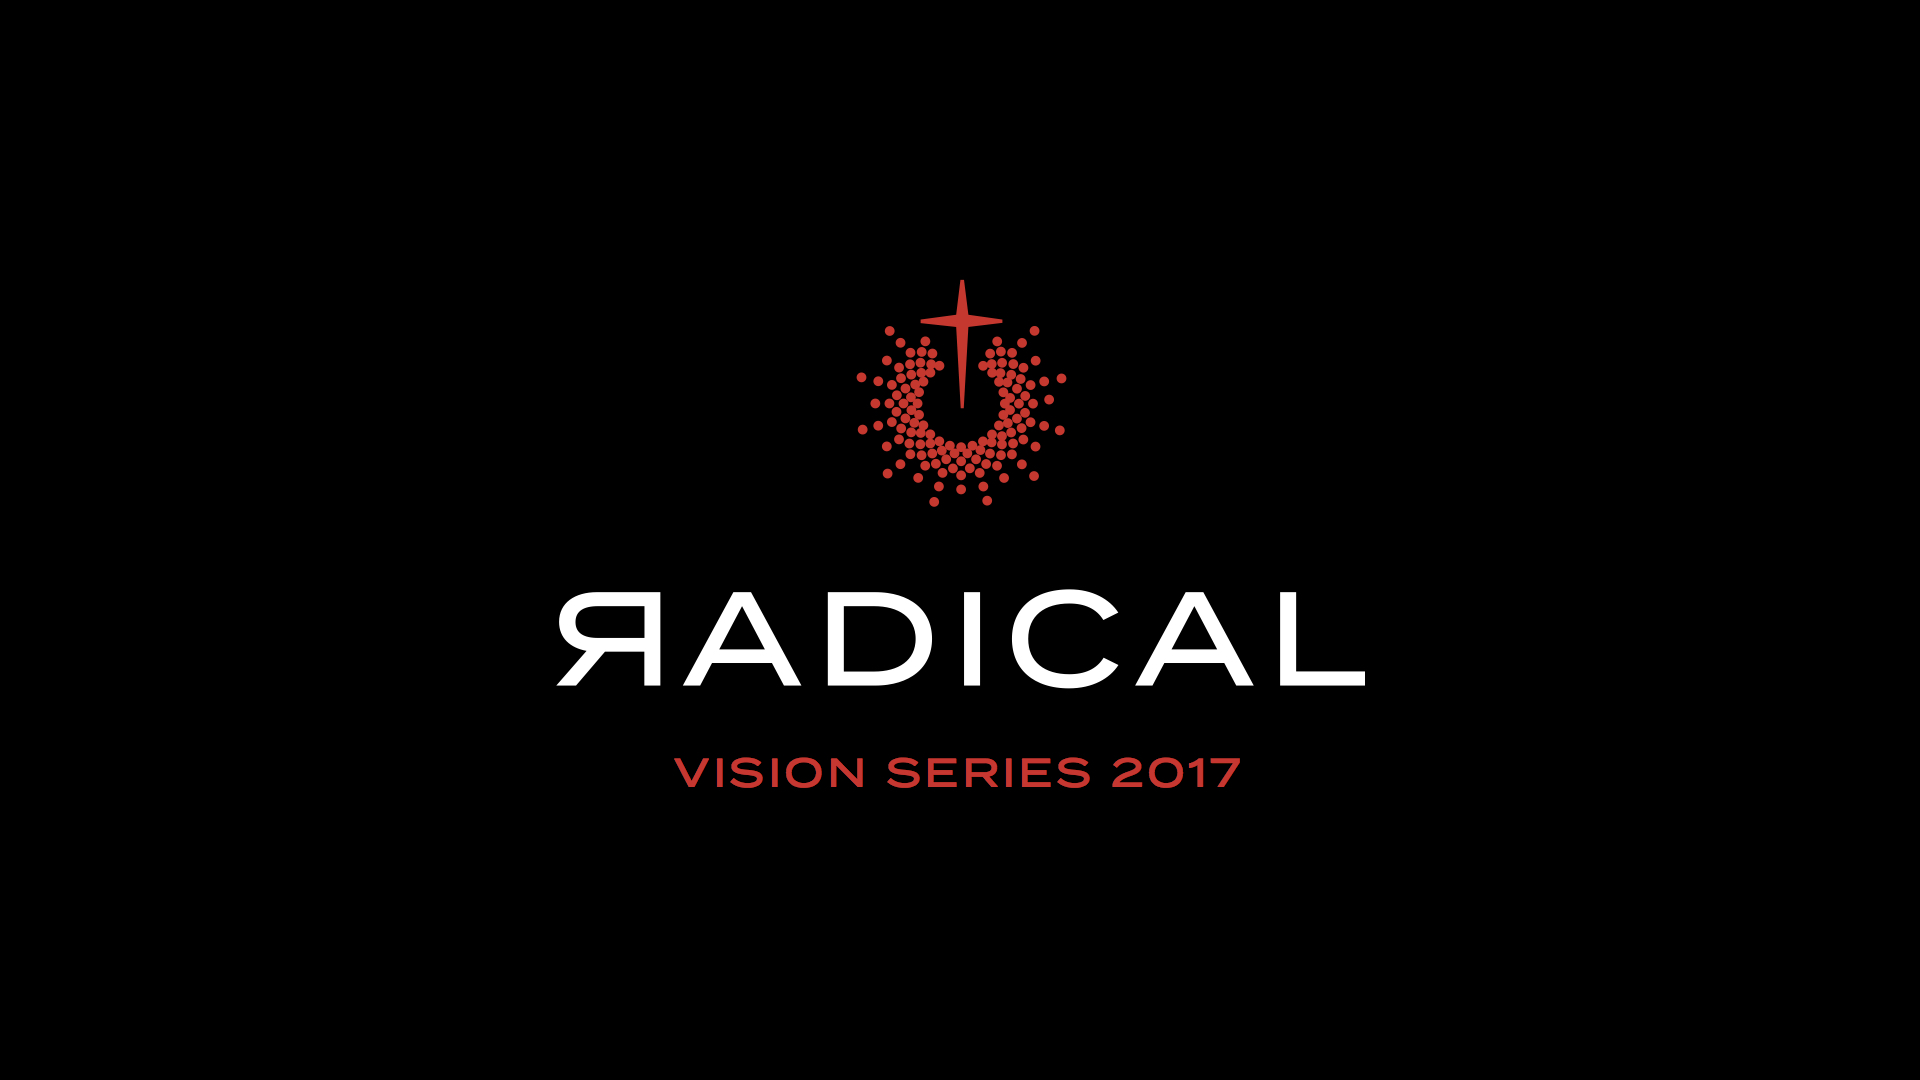 RADICAL INVESTMENT - Vision Series 2017